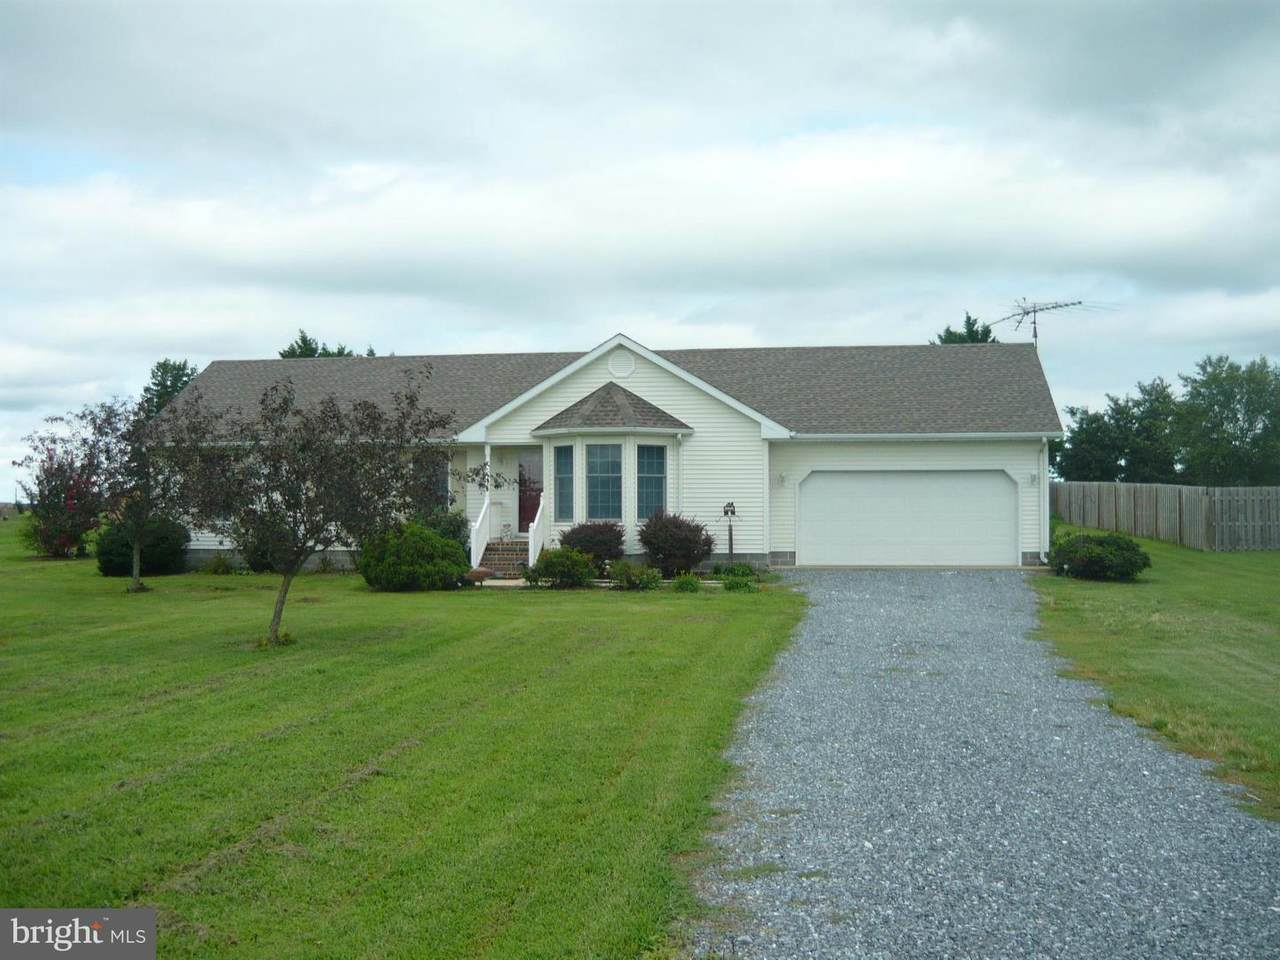 4302 Blink Horn Road - Photo 1